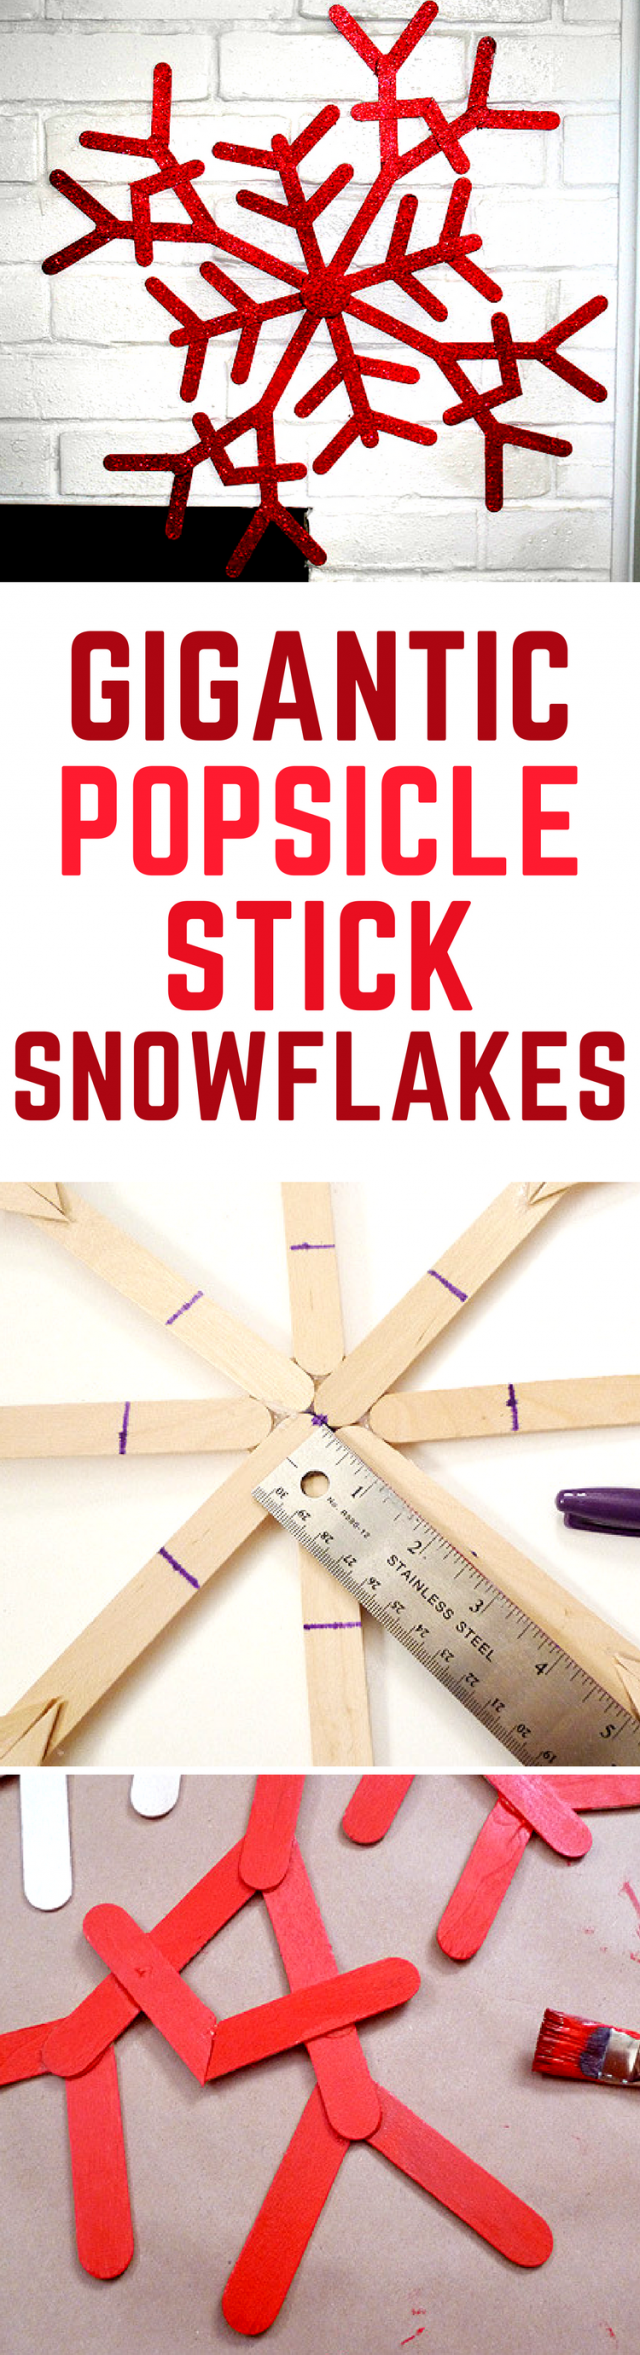 Make these diy big snowflakes out of popsicle sticks for a Christmas holiday craft!